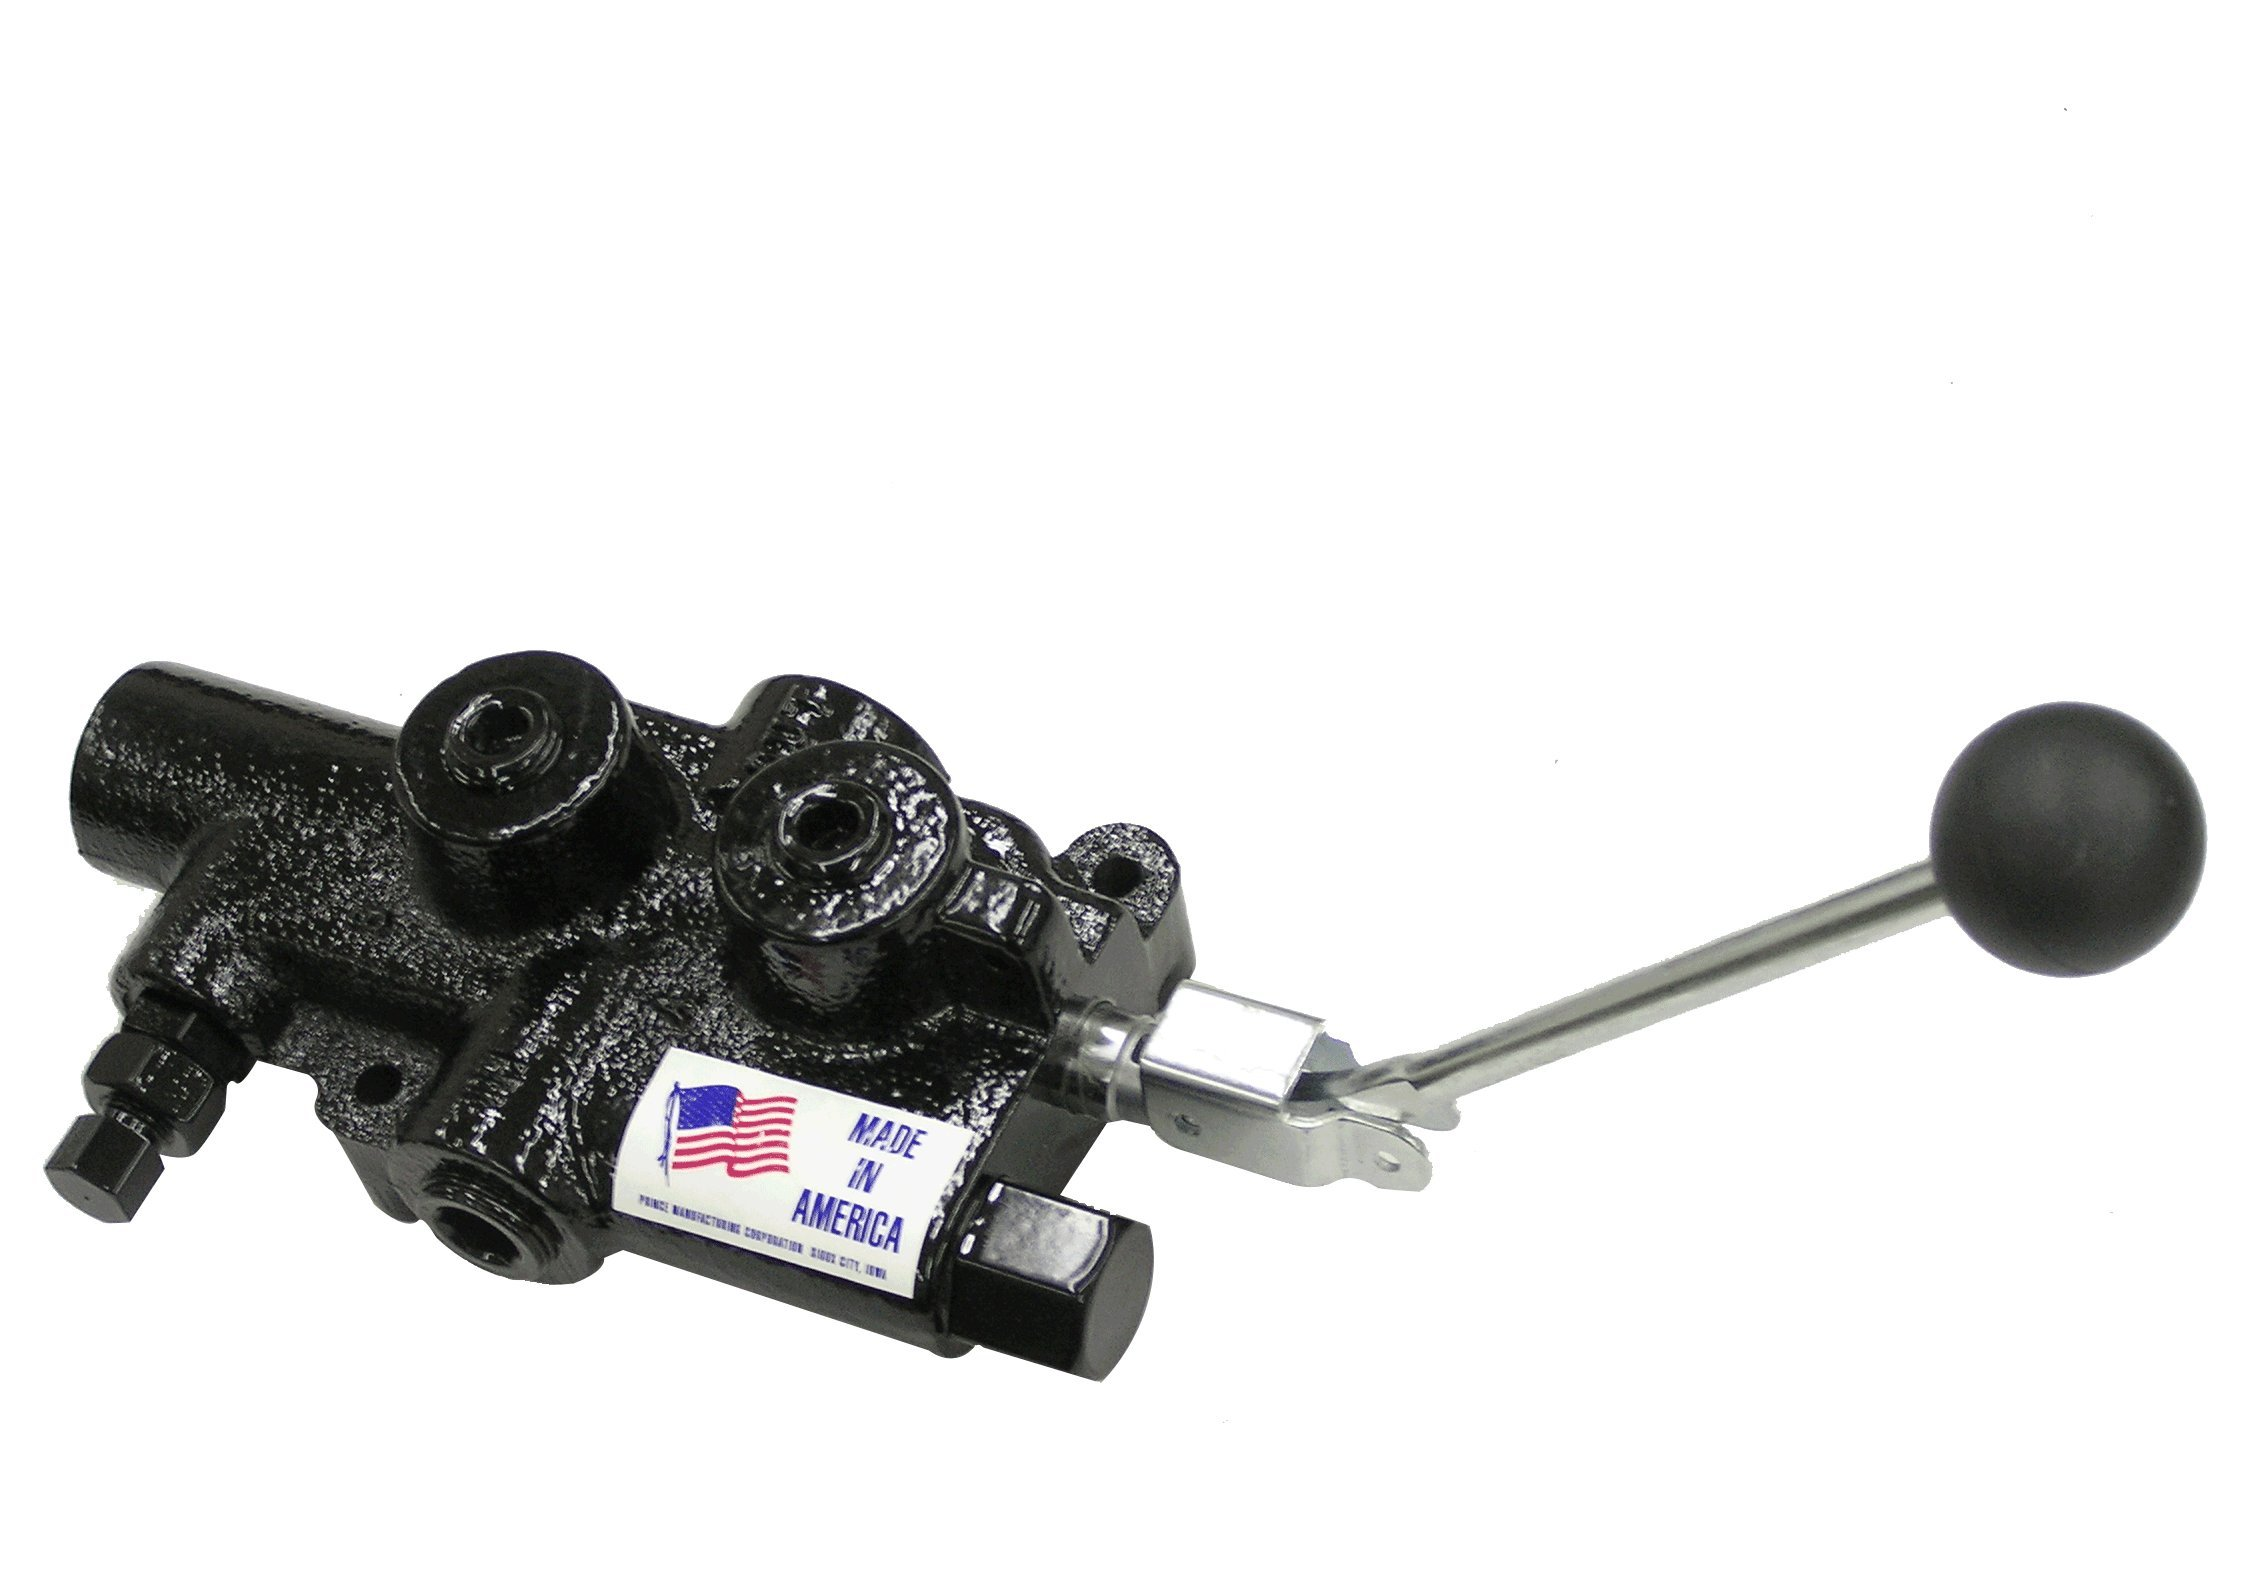 Prince Manufacturing LS-3060-2 Directional Control Valve, Log Splitter, 4 Ways, 3 Positions, Cast Iron, Lever Handle, 2750 psi, 25 GPM, 3/4'' NPTF In/Out, 3/4'' NPTF Work, Gloss Black